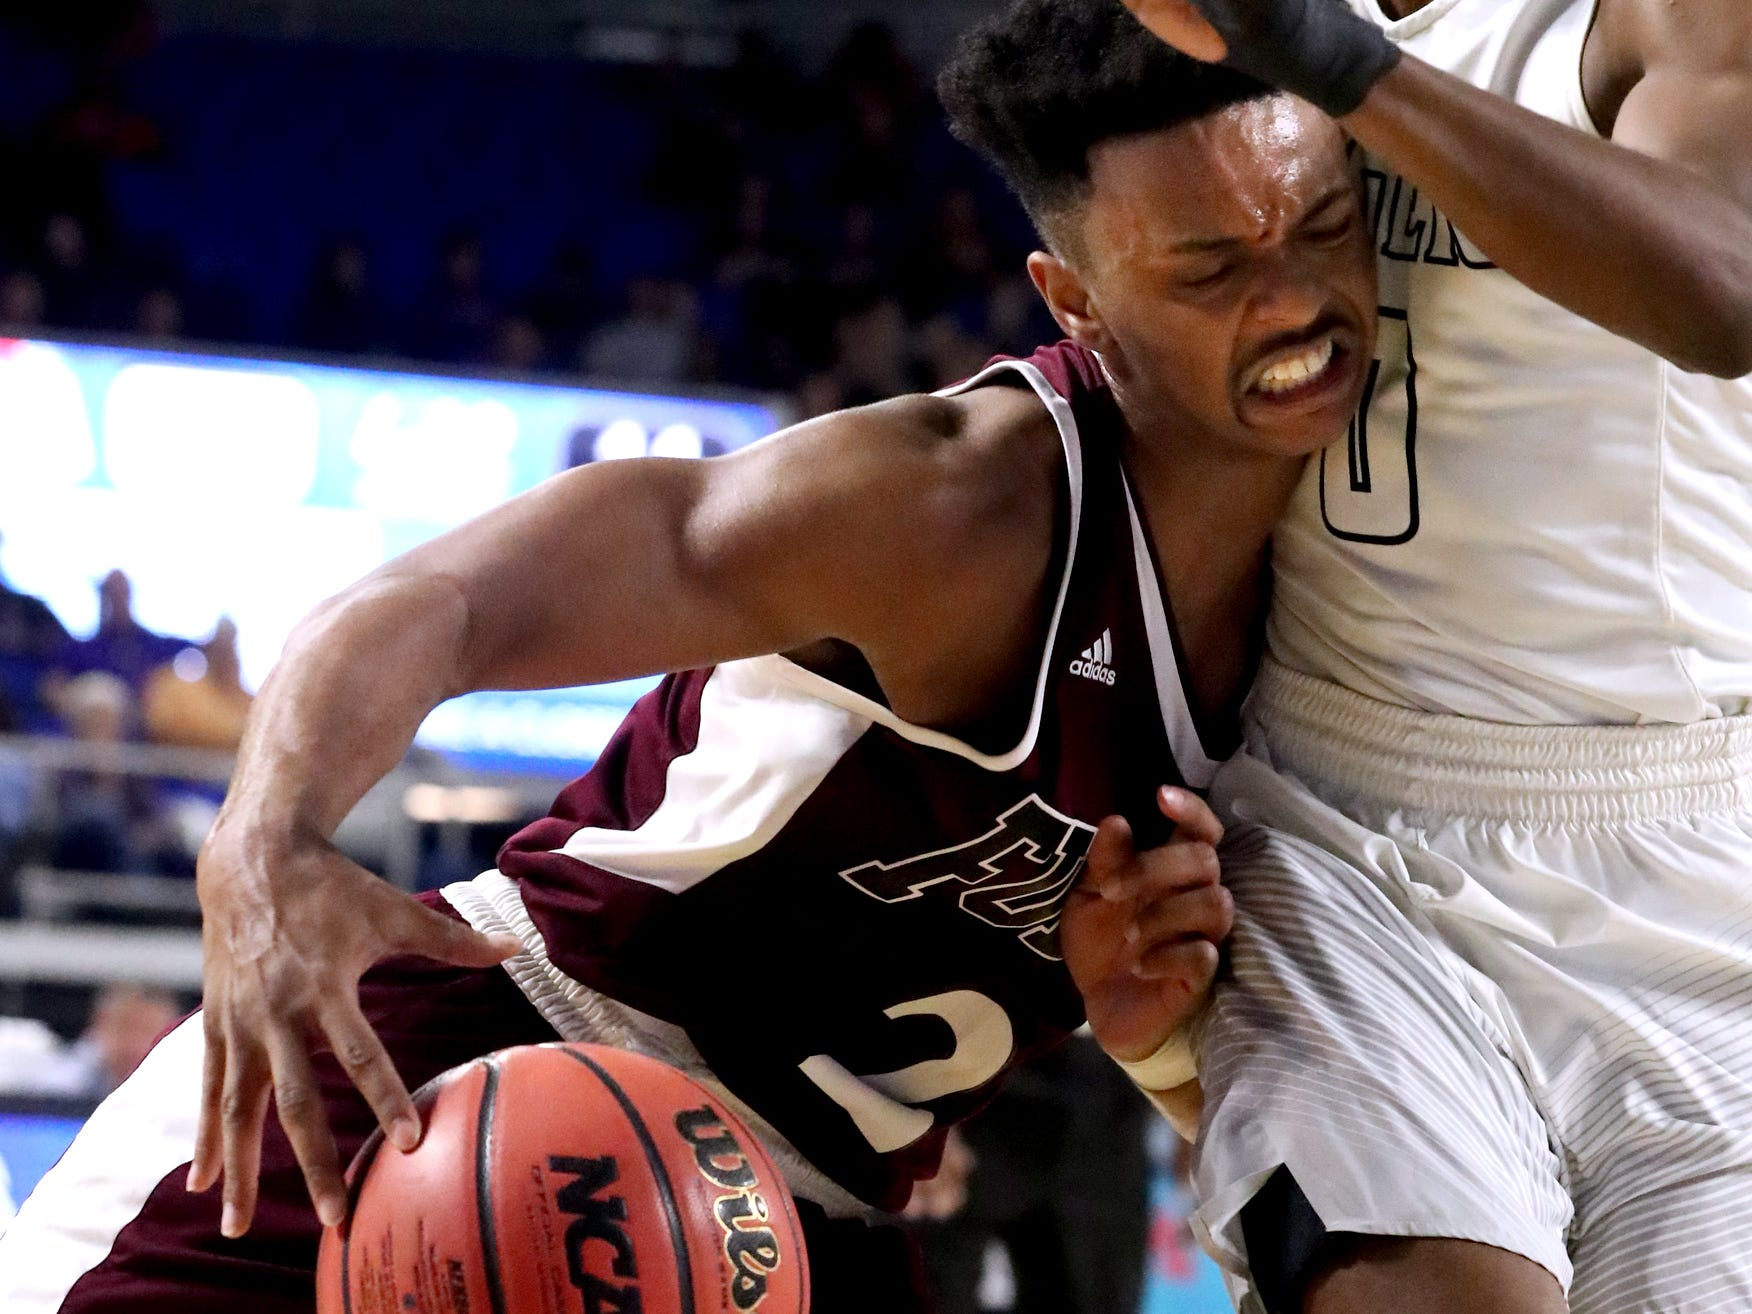 Fulton's Ron Davis III (2) drives to the basket as Mitchell's Michael Rice (0) guards him during the quarterfinal round of the TSSAA Class AA Boys State Tournament, on Wednesday, March 13, 2019, at Murphy Center in Murfreesboro, Tenn.